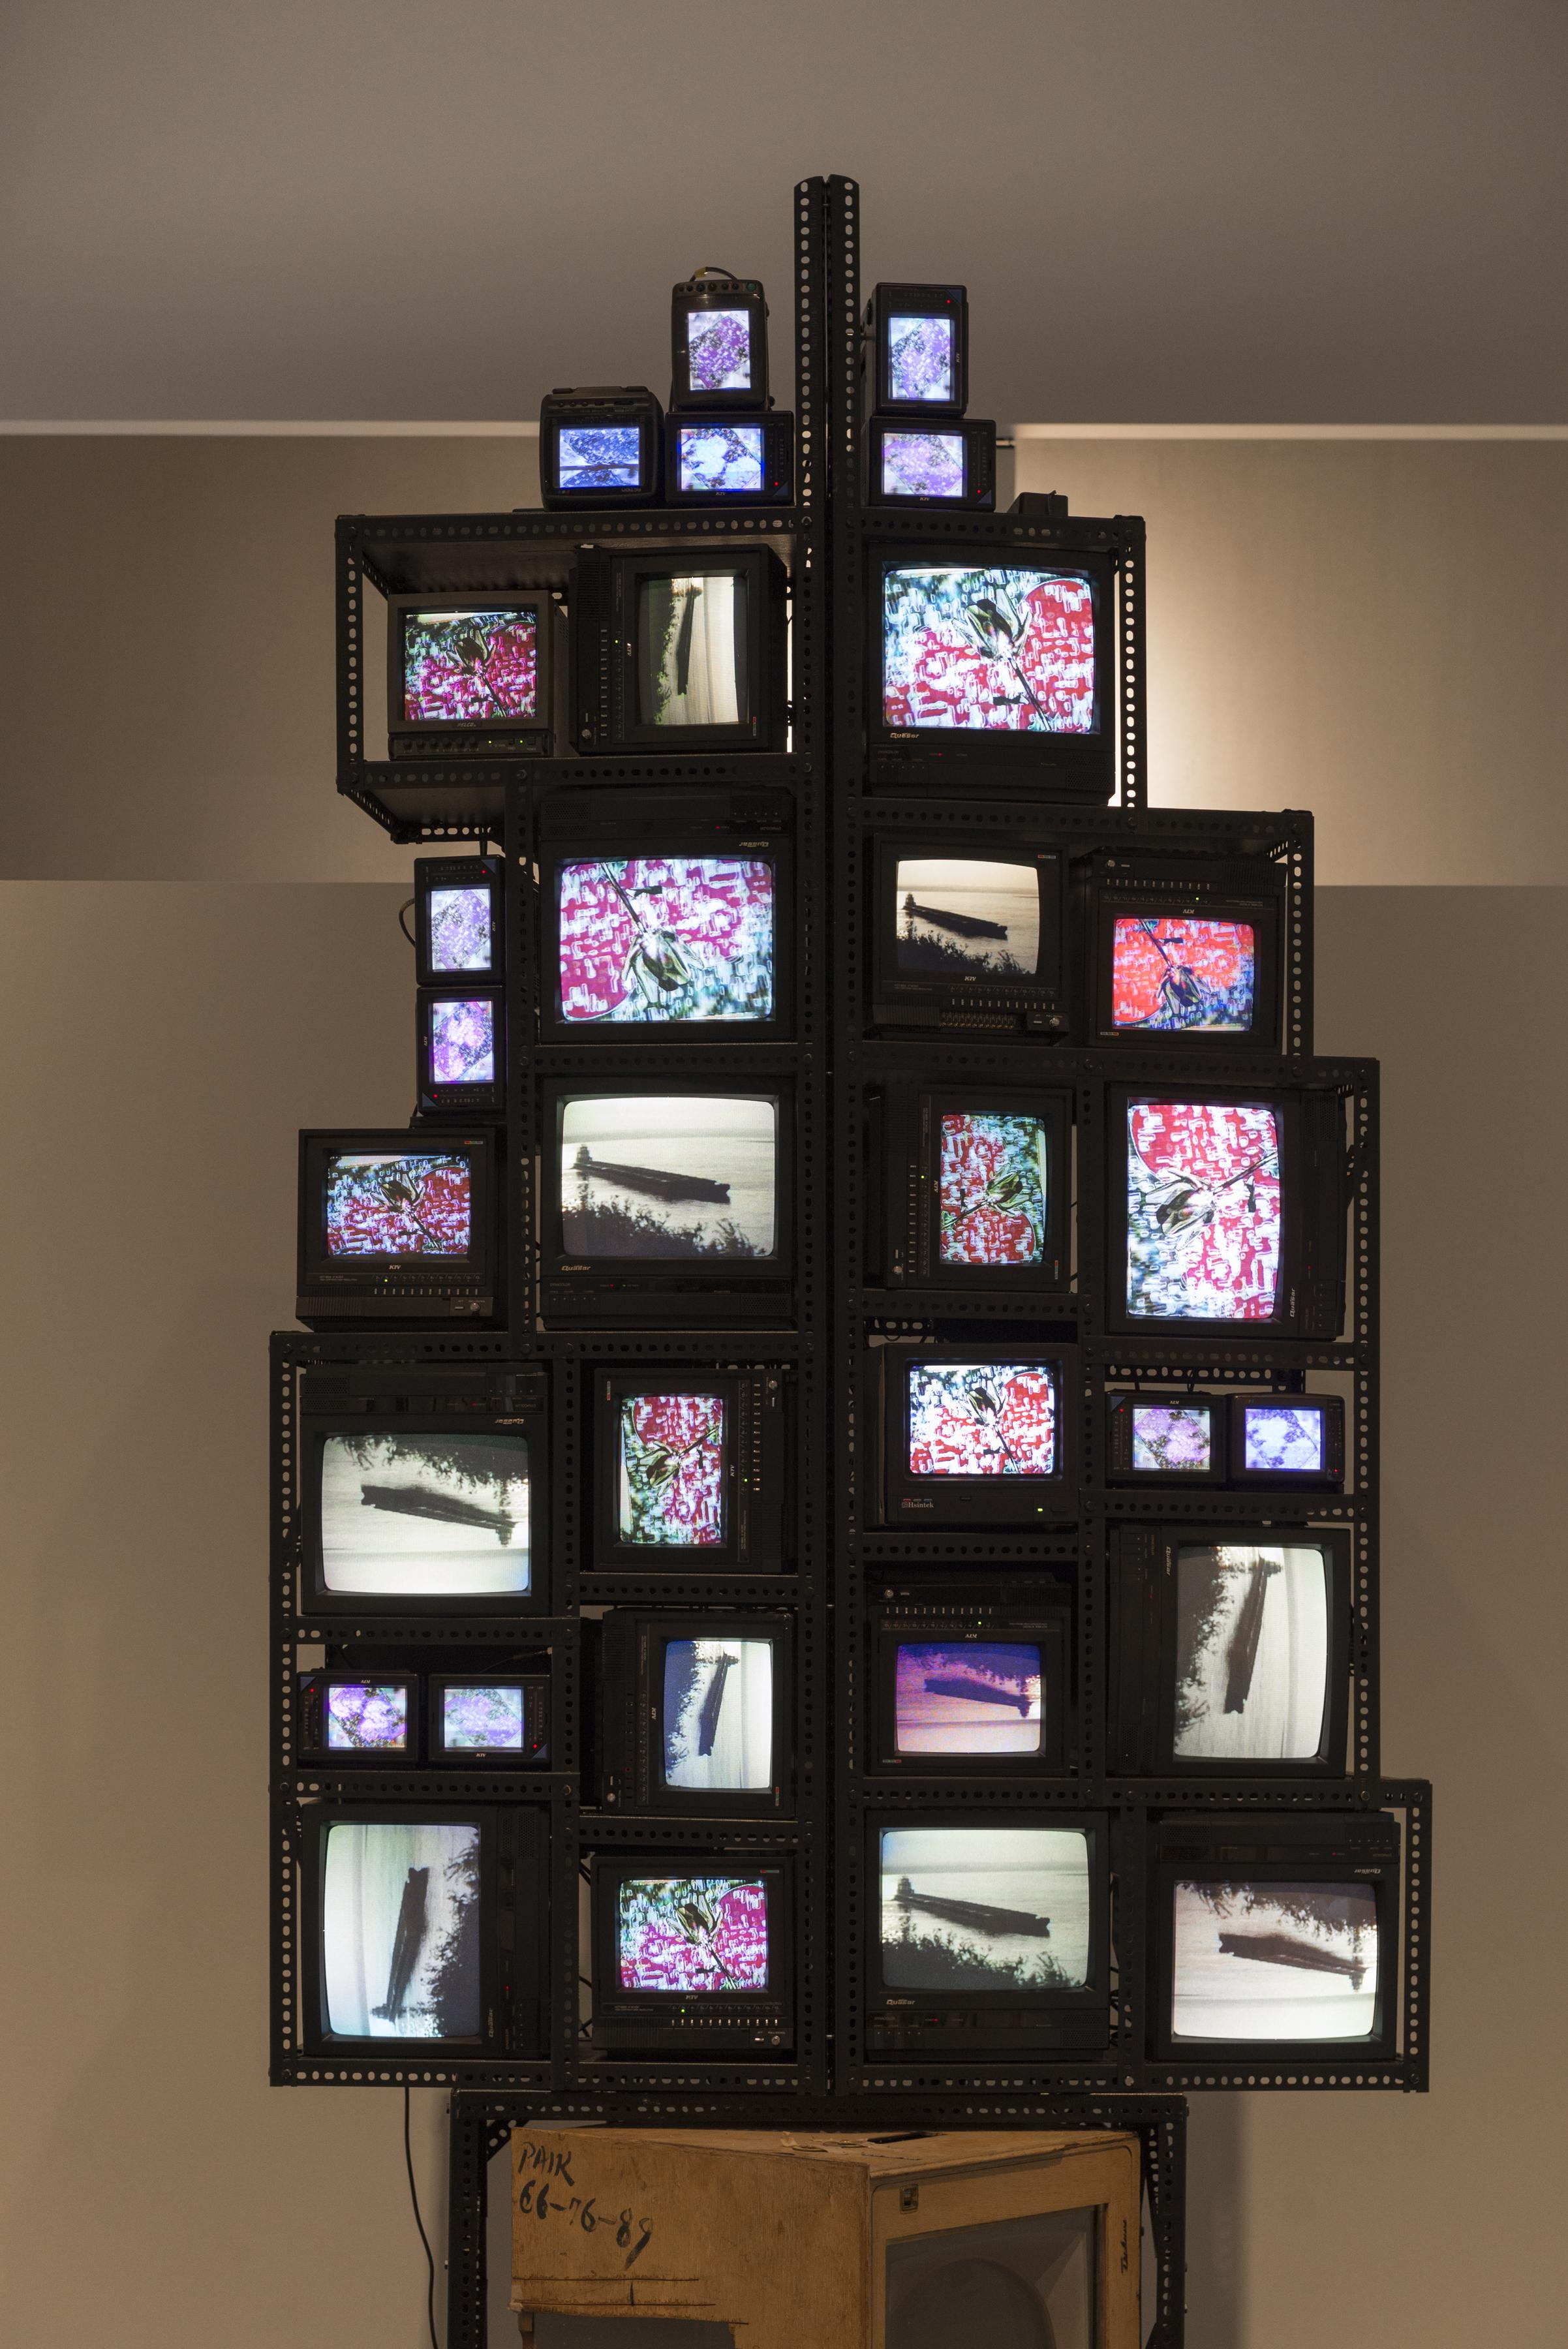 Cathode ray televisions of medium to small size are stacked on top one another at varying orientations and held together by perforated metal brackets. Two different images are repeated on the different televisions: a black-and-white video of a barge on a lake and a color drawing of a flower on a patterned background.